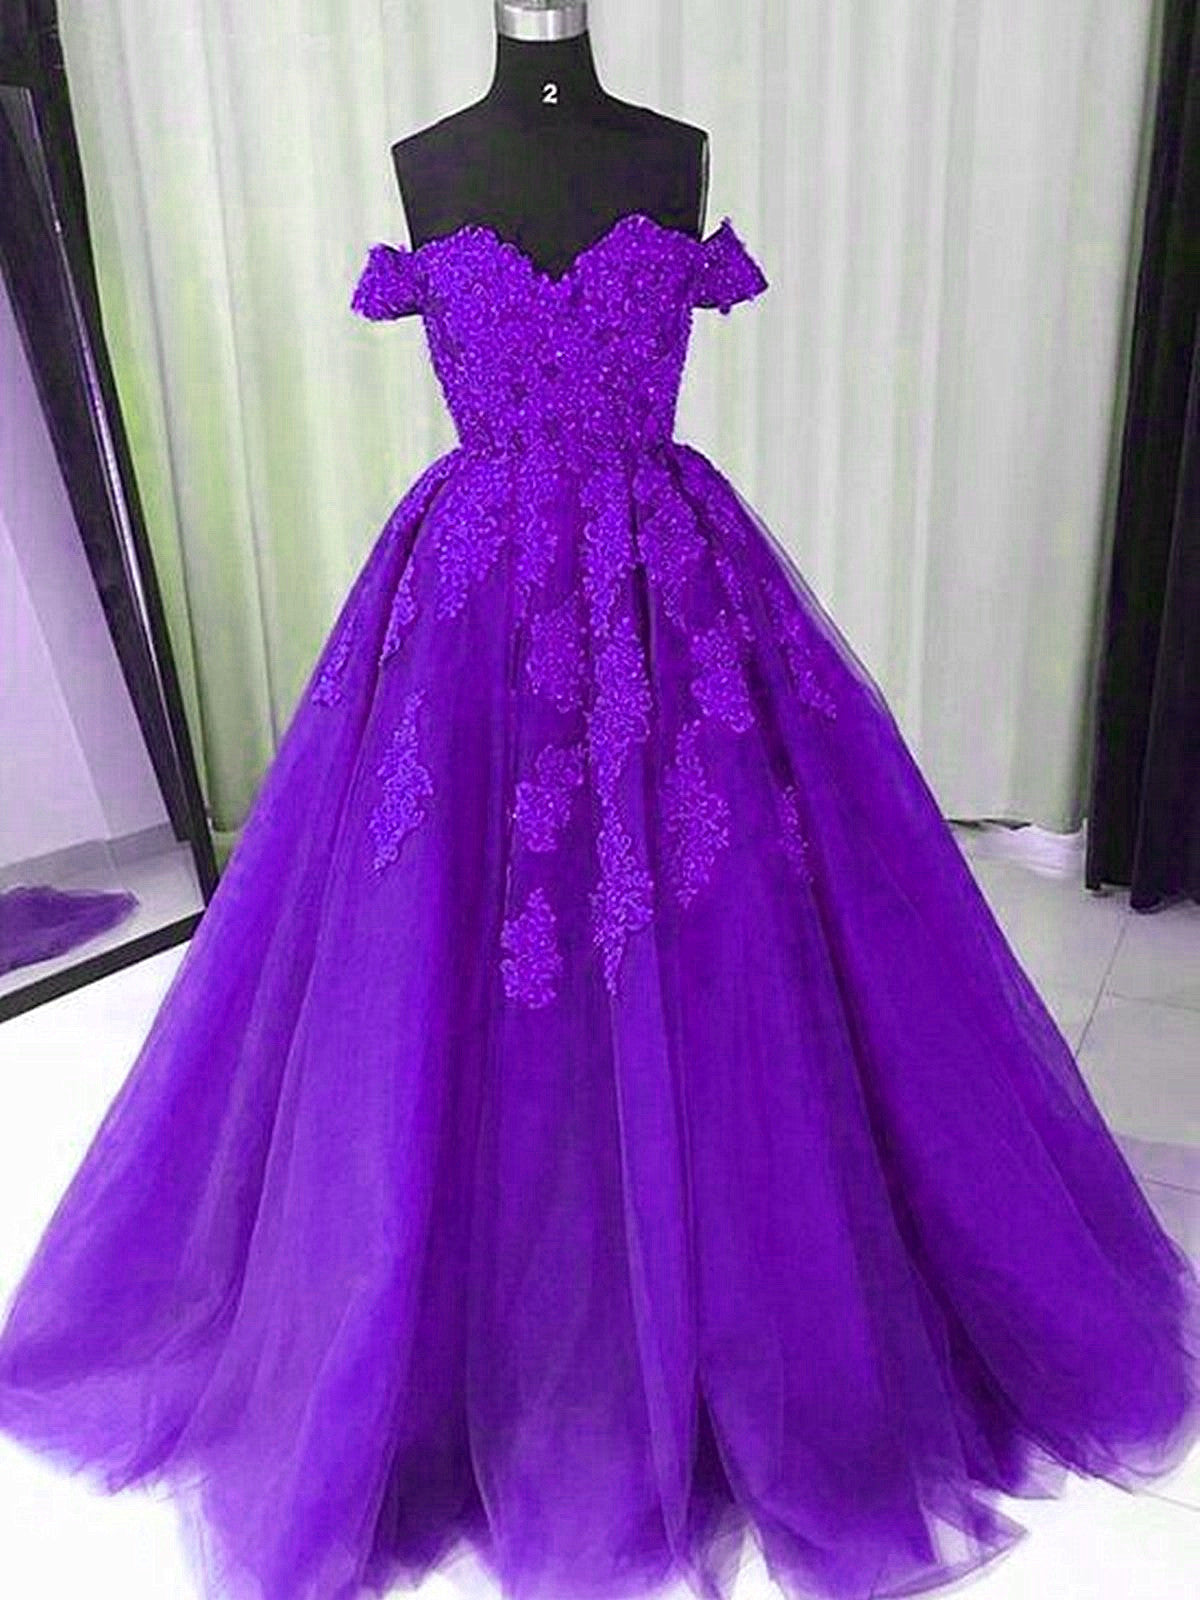 Beautiful Purple Off Shoulder Long Party Dress with Lace Applique, Evening Gown